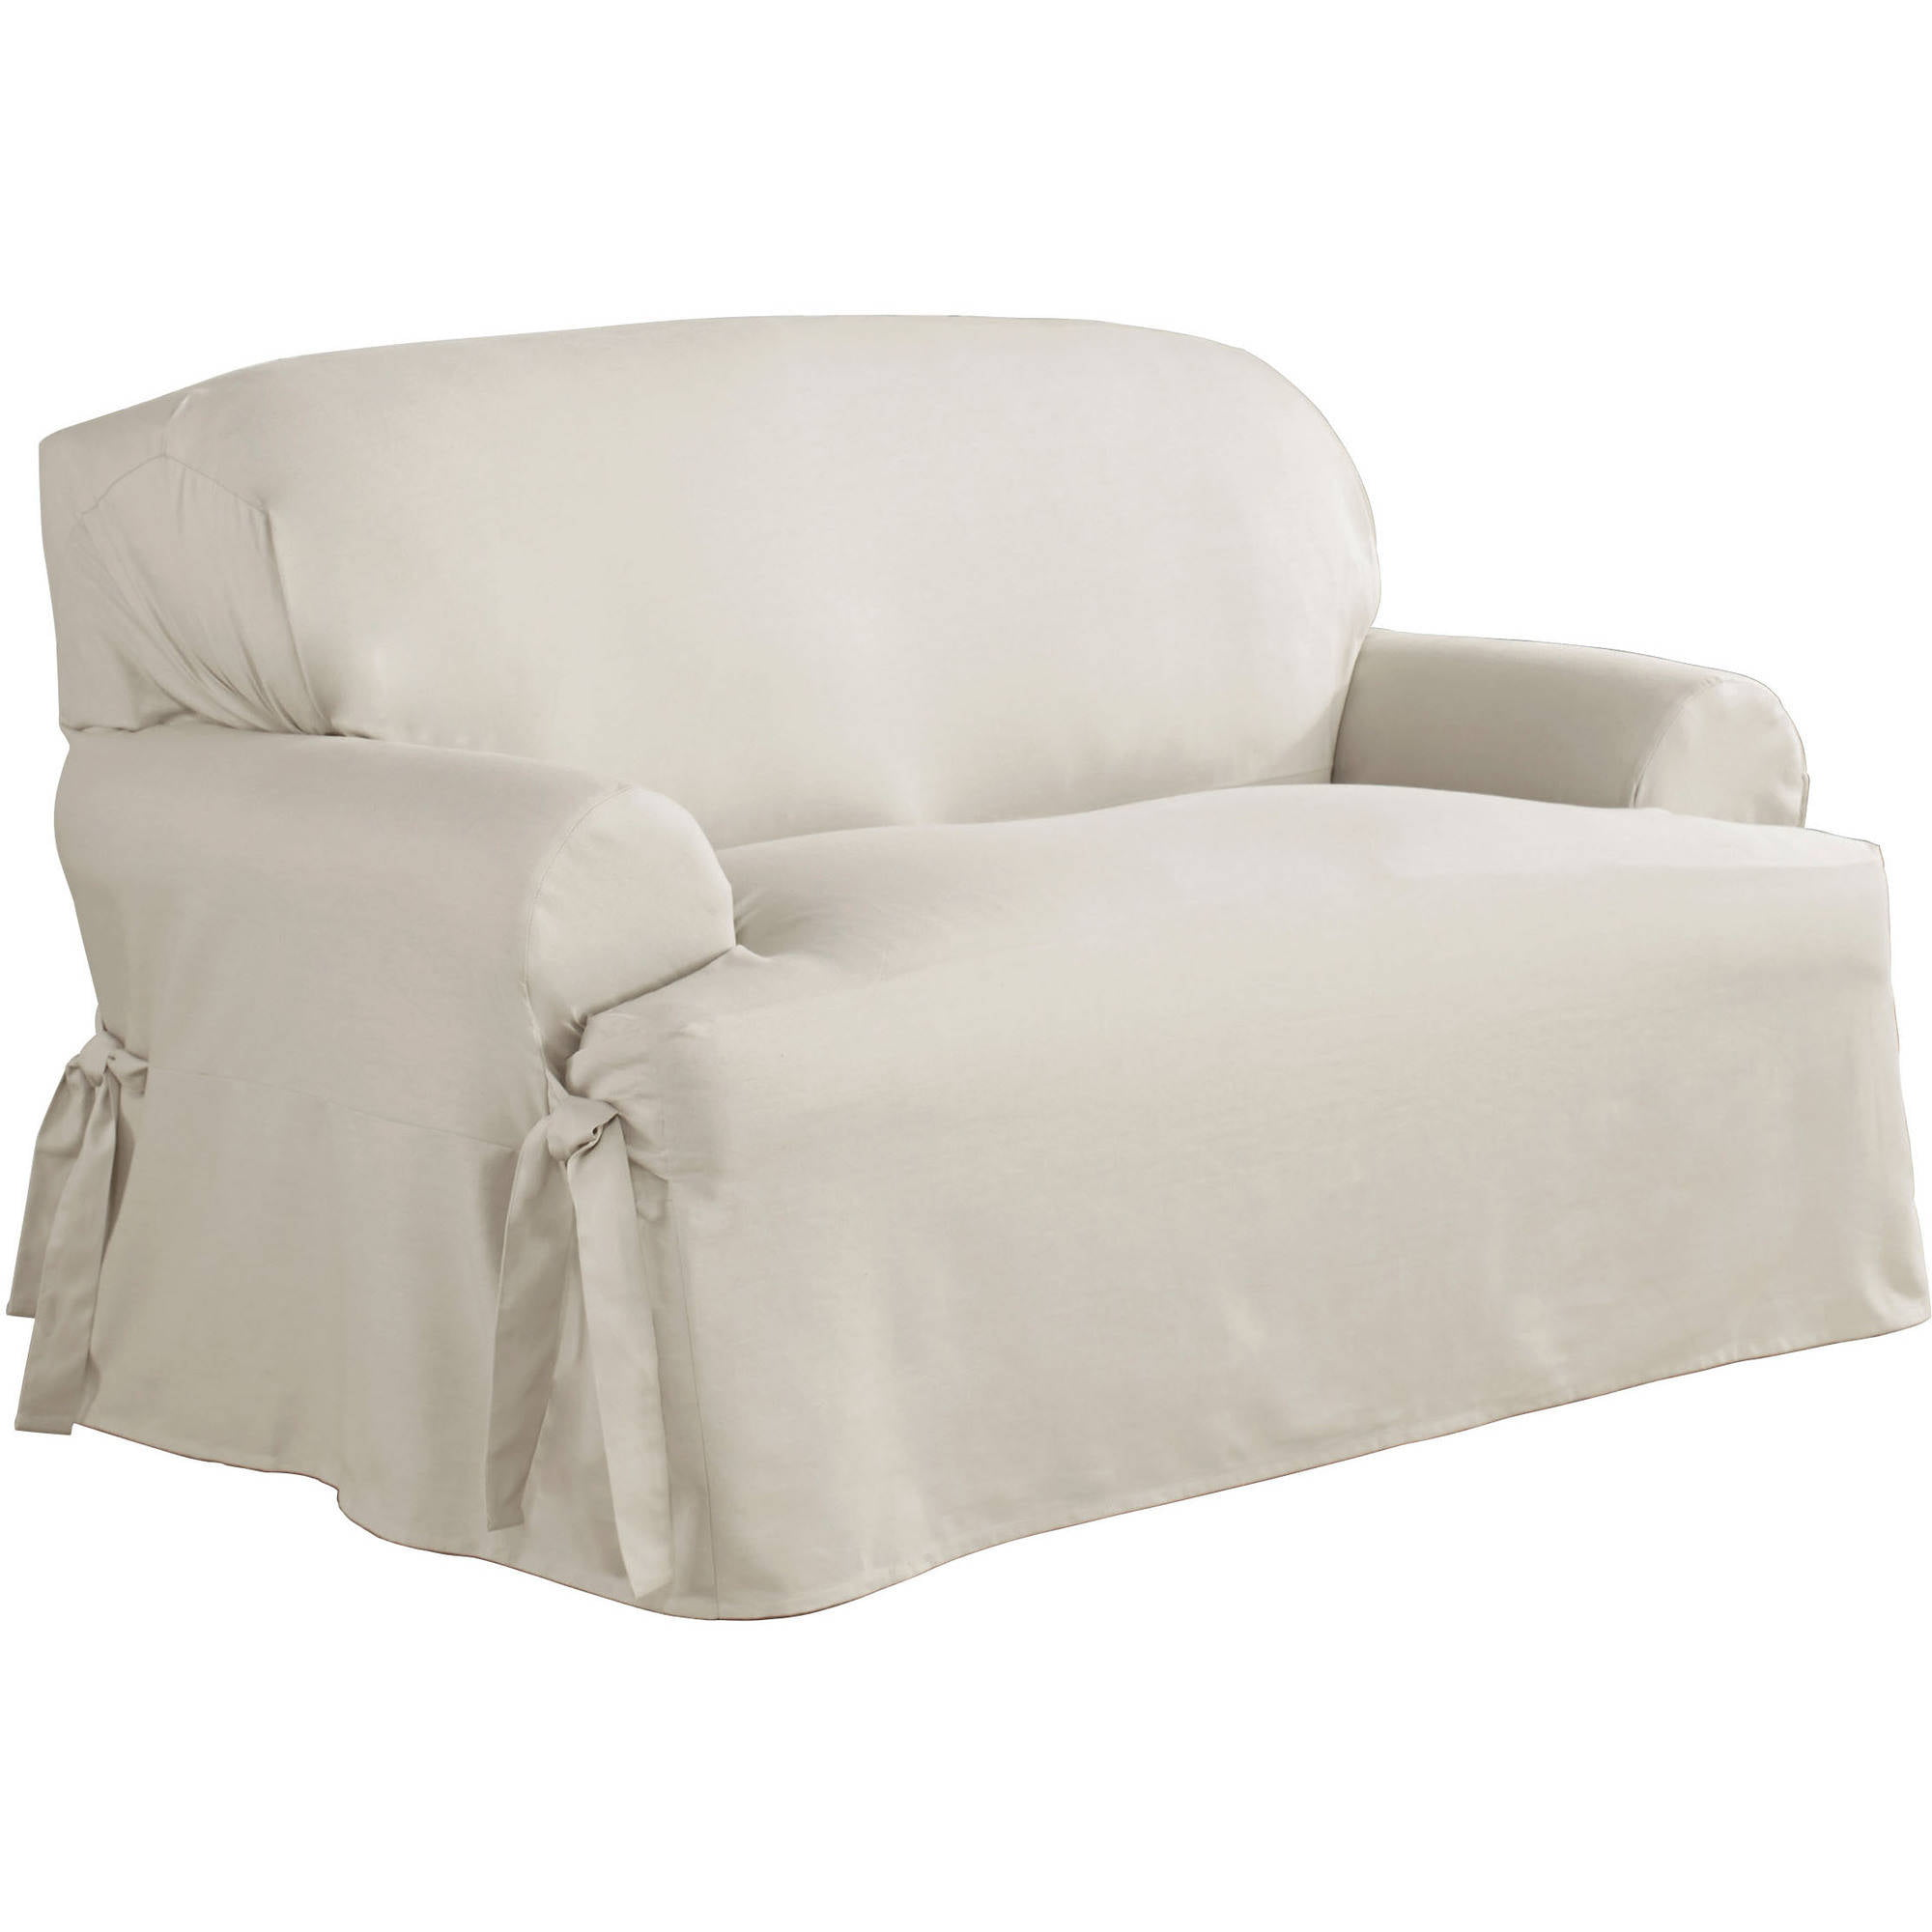 Serta Relaxed Fit Duck Furniture Slipcover, Loveseat 1 Piece T Cushion    Walmart.com